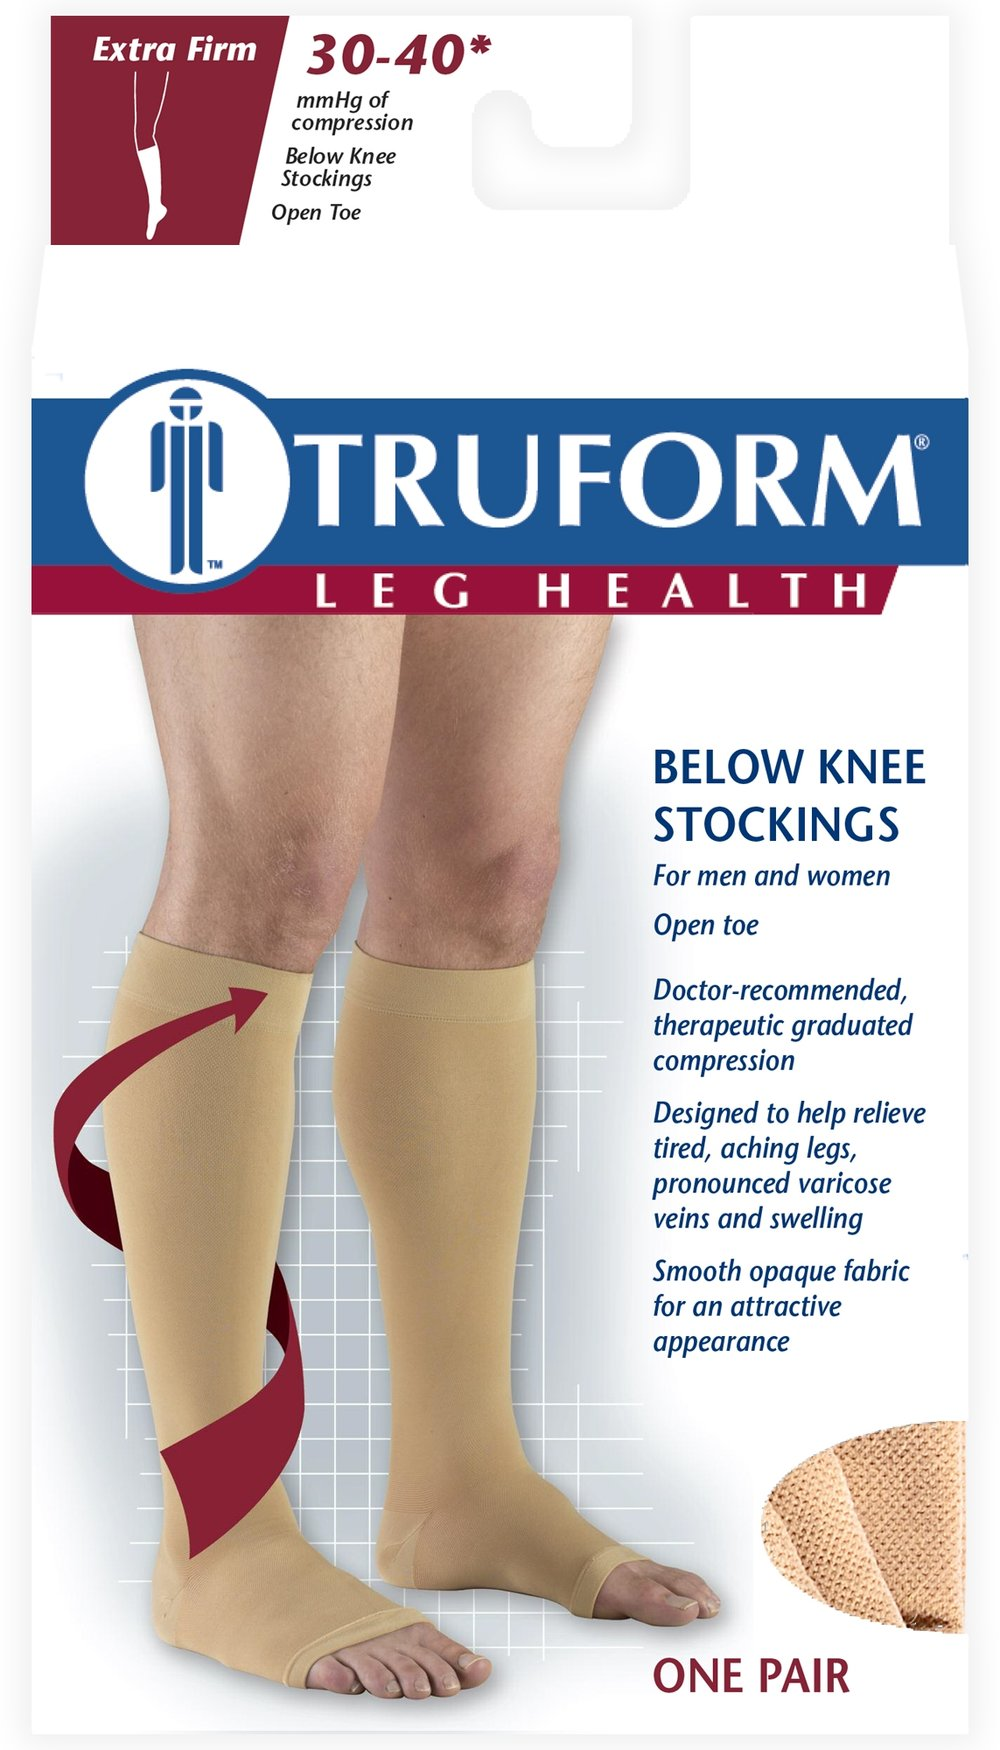 0845 / KNEE HIGH-SOFT TOP, OPEN TOE / 30-40 MMHG PACKAGING IMAGE